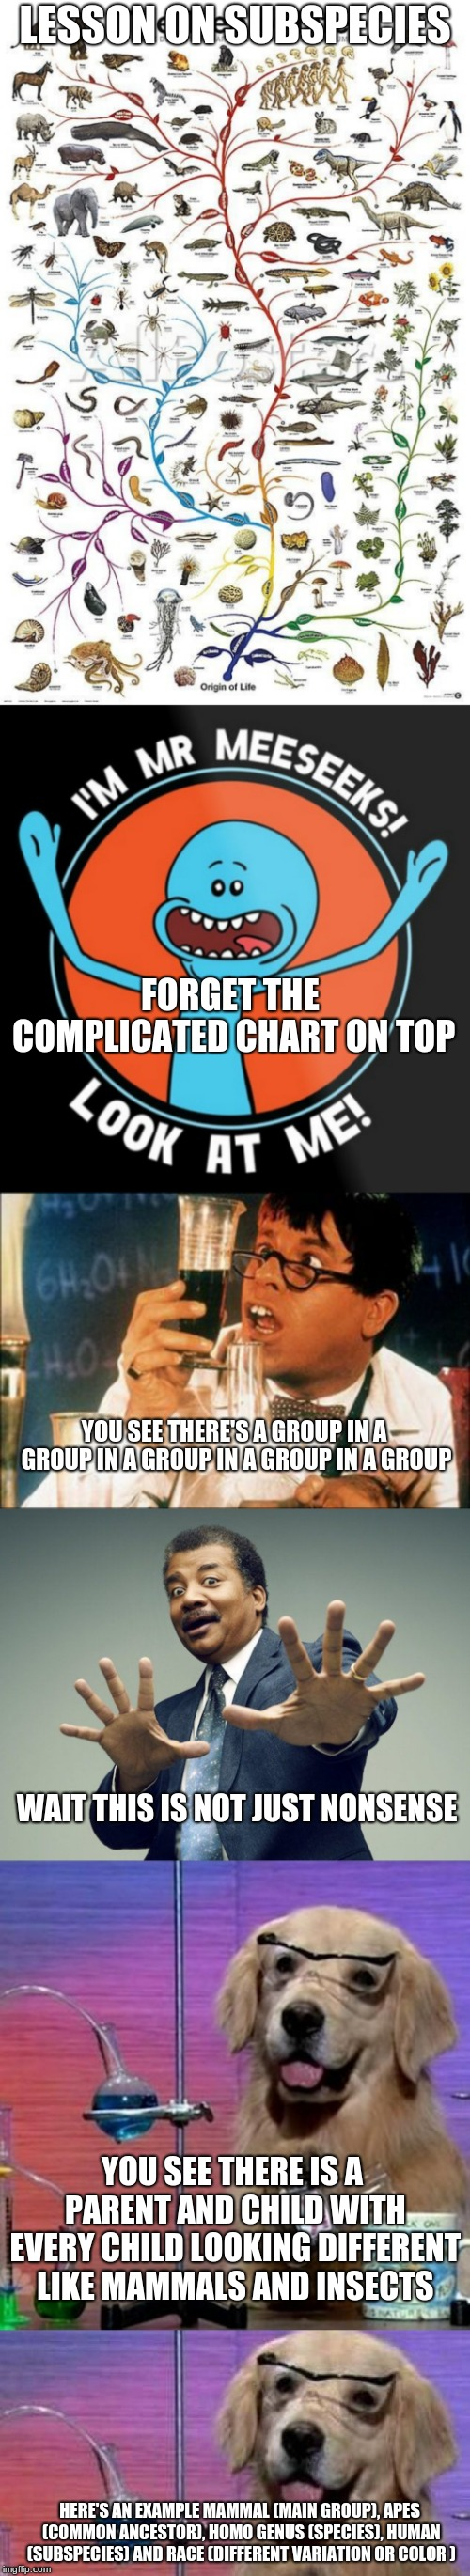 Here's a big boy (Weekly Lessons Ep 5) | LESSON ON SUBSPECIES FORGET THE COMPLICATED CHART ON TOP YOU SEE THERE'S A GROUP IN A GROUP IN A GROUP IN A GROUP IN A GROUP WAIT THIS IS NO | image tagged in memes,dj's lessons,evolution,simplified | made w/ Imgflip meme maker